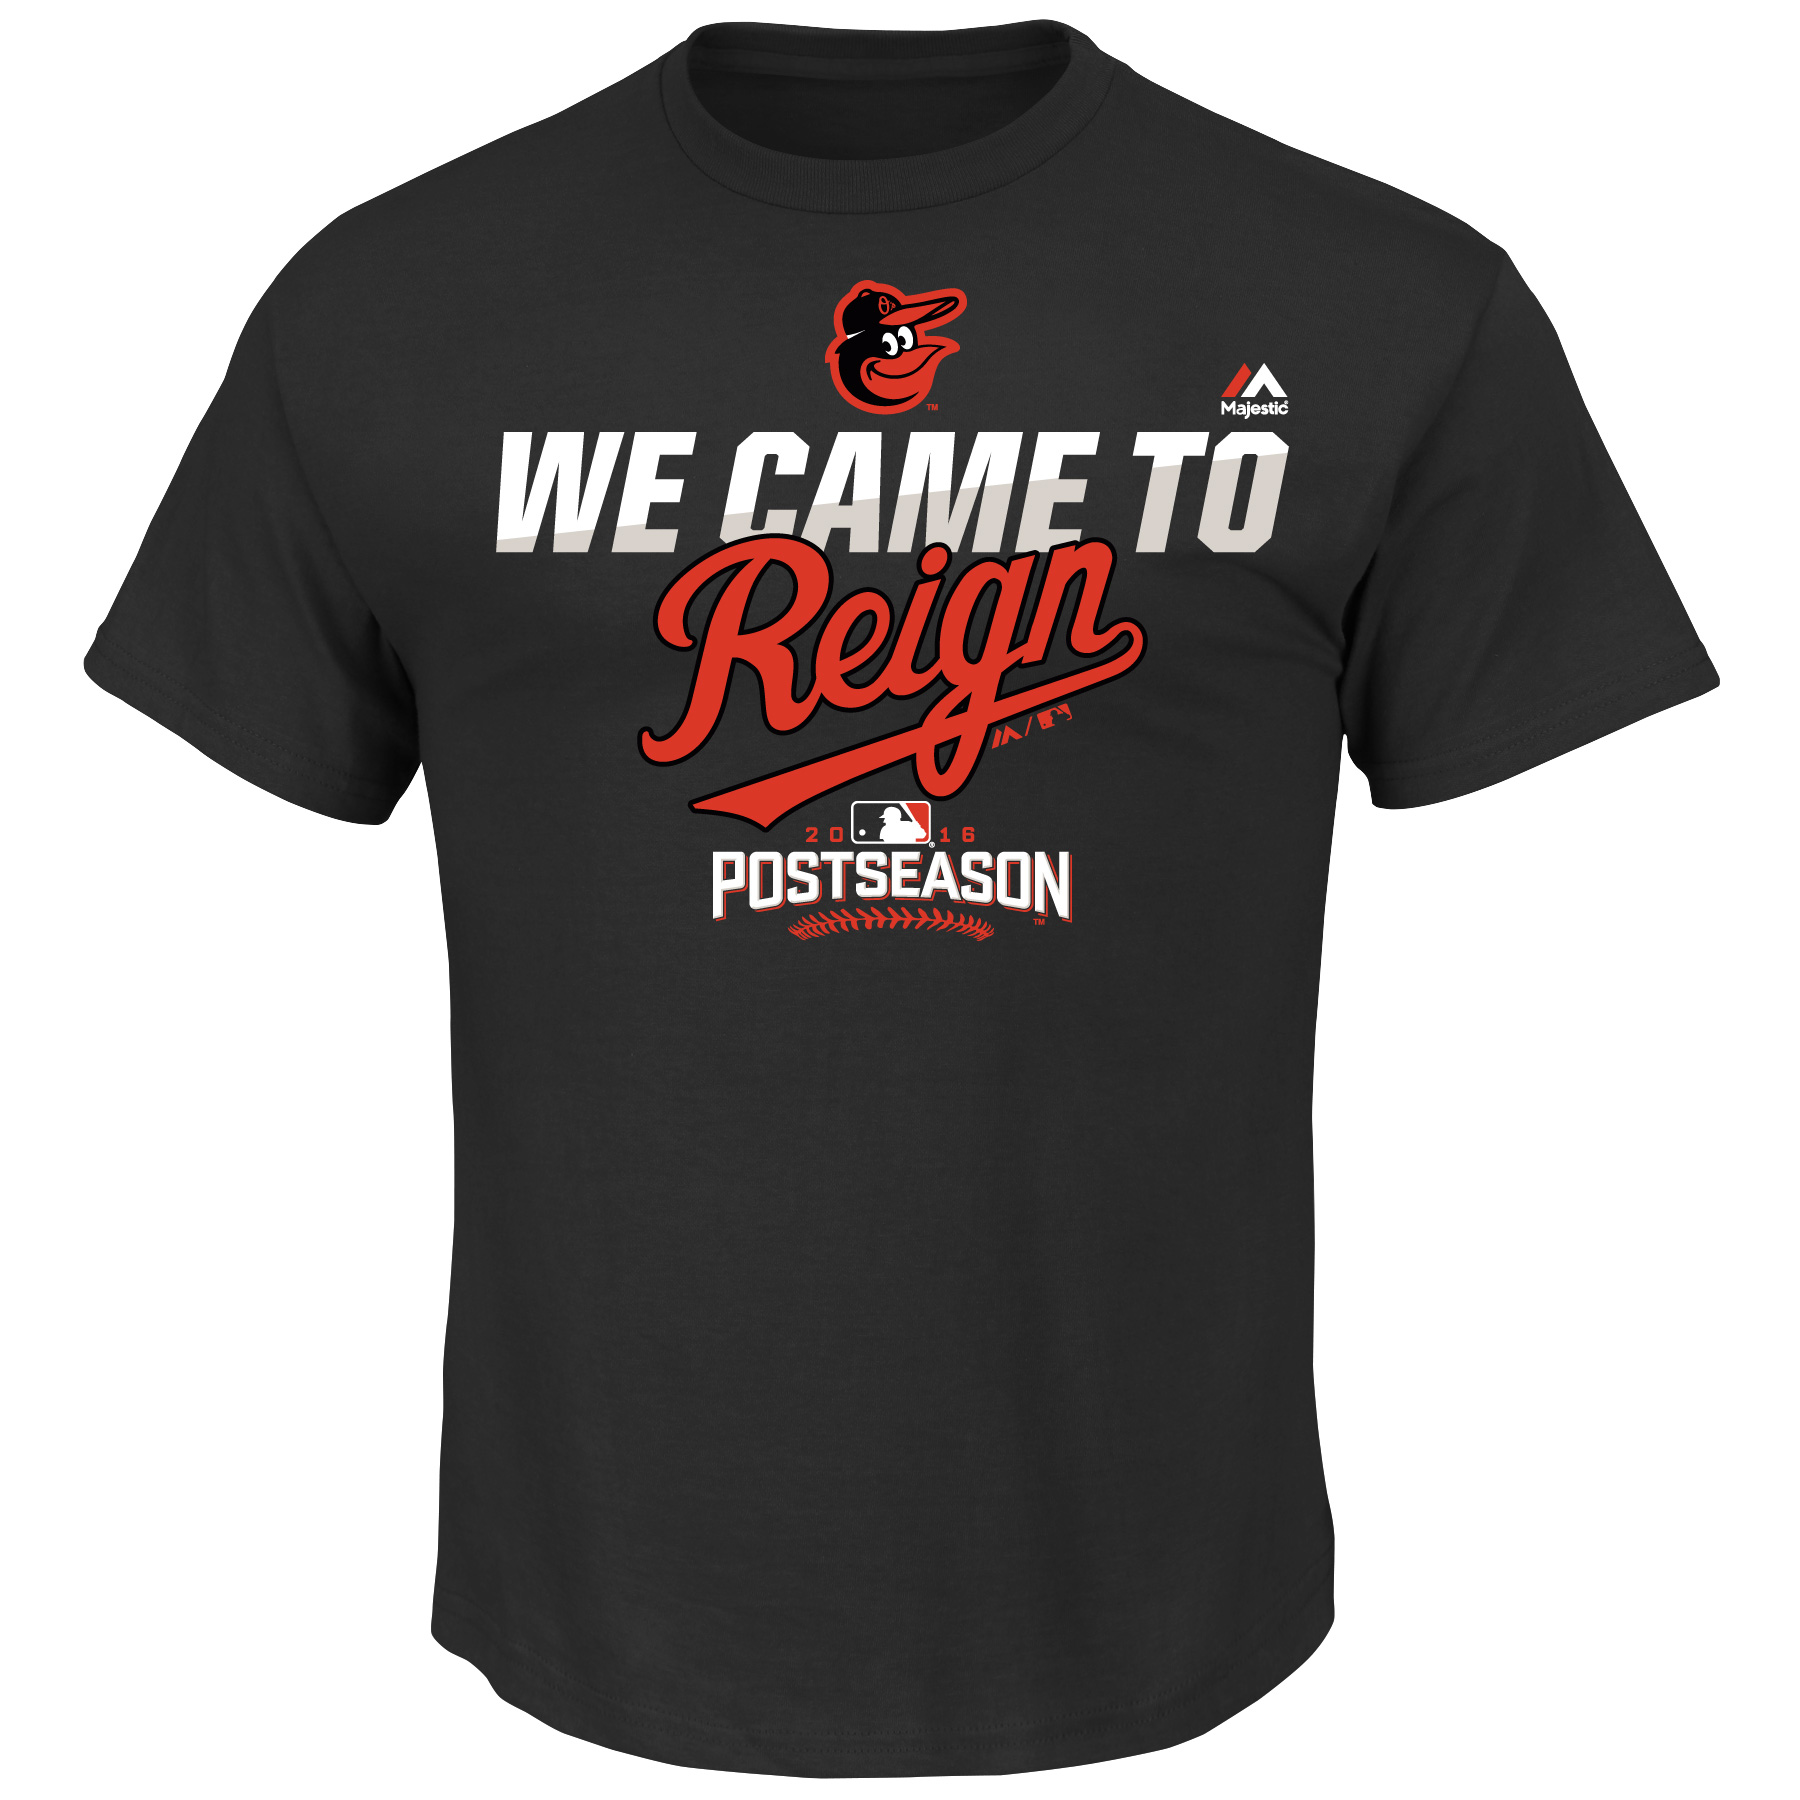 Baltimore Orioles Majestic Youth 2016 Postseason We Came to Reign Authentic Collection Participant T-Shirt - Black